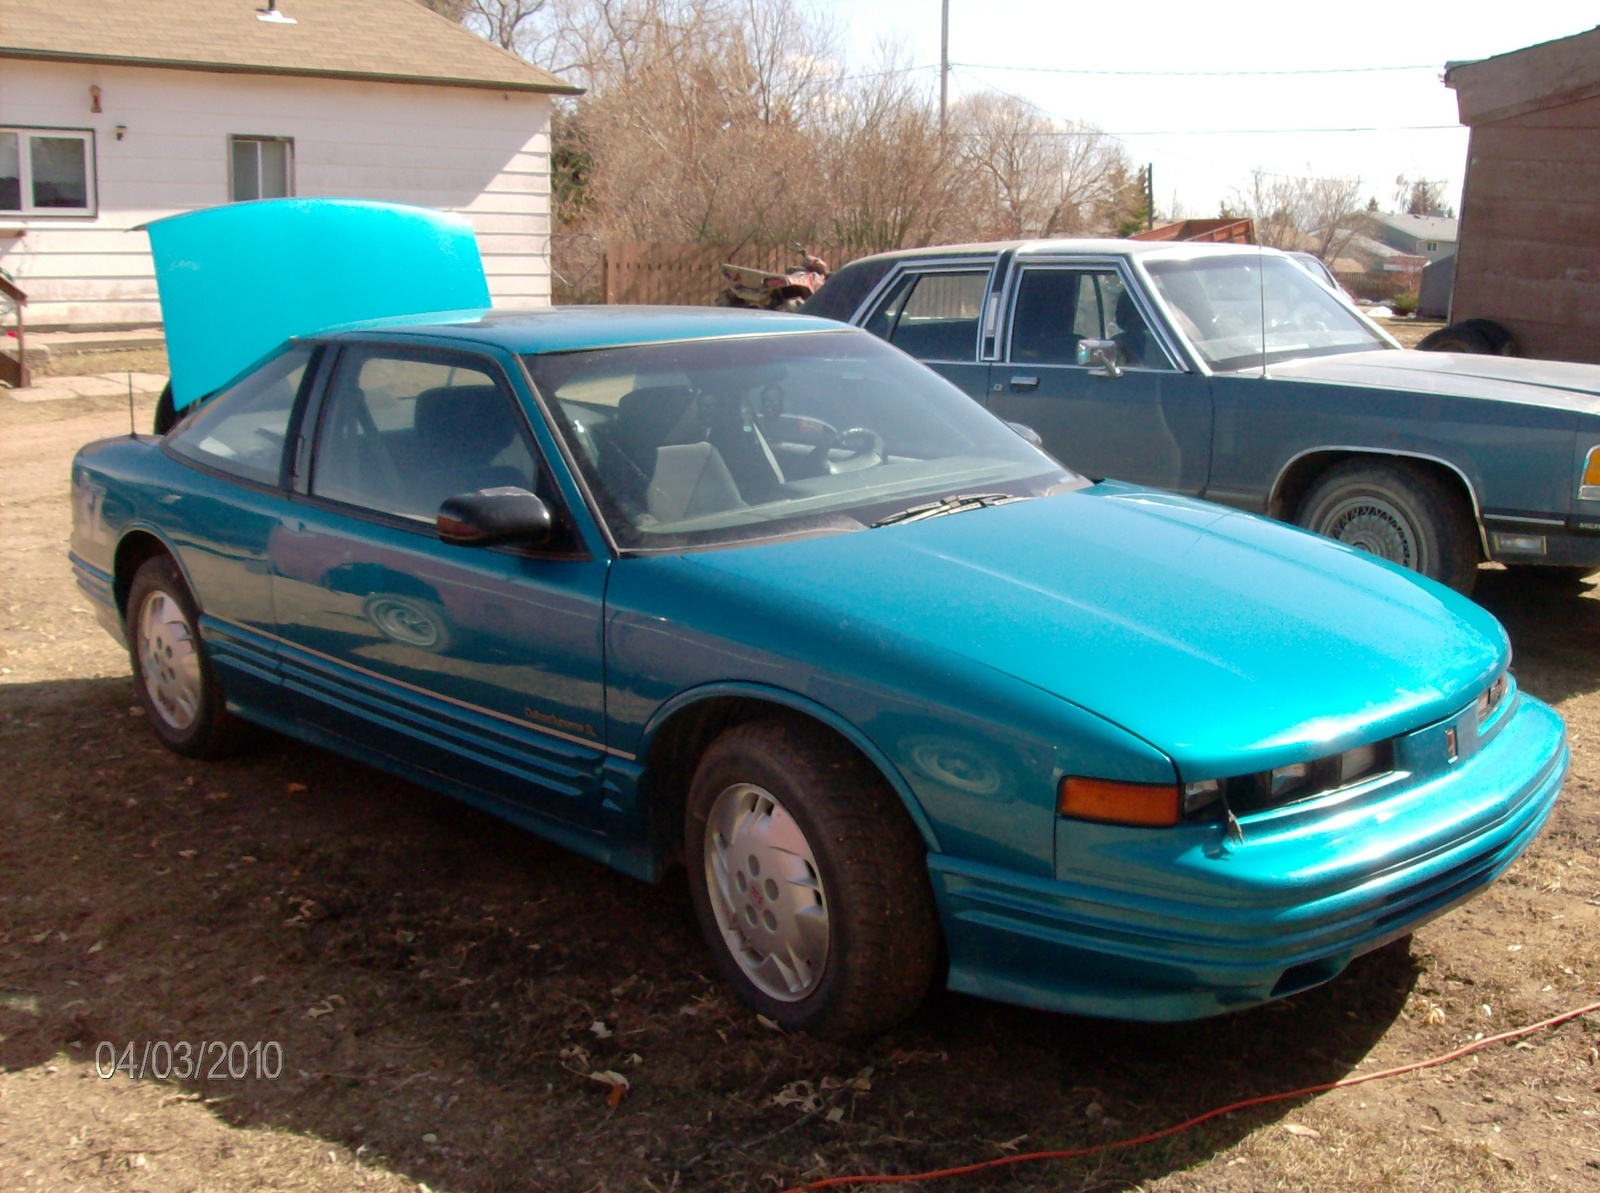 1994 Oldsmobile Cutlass Supreme 2 Dr Special Edition Coupe picture